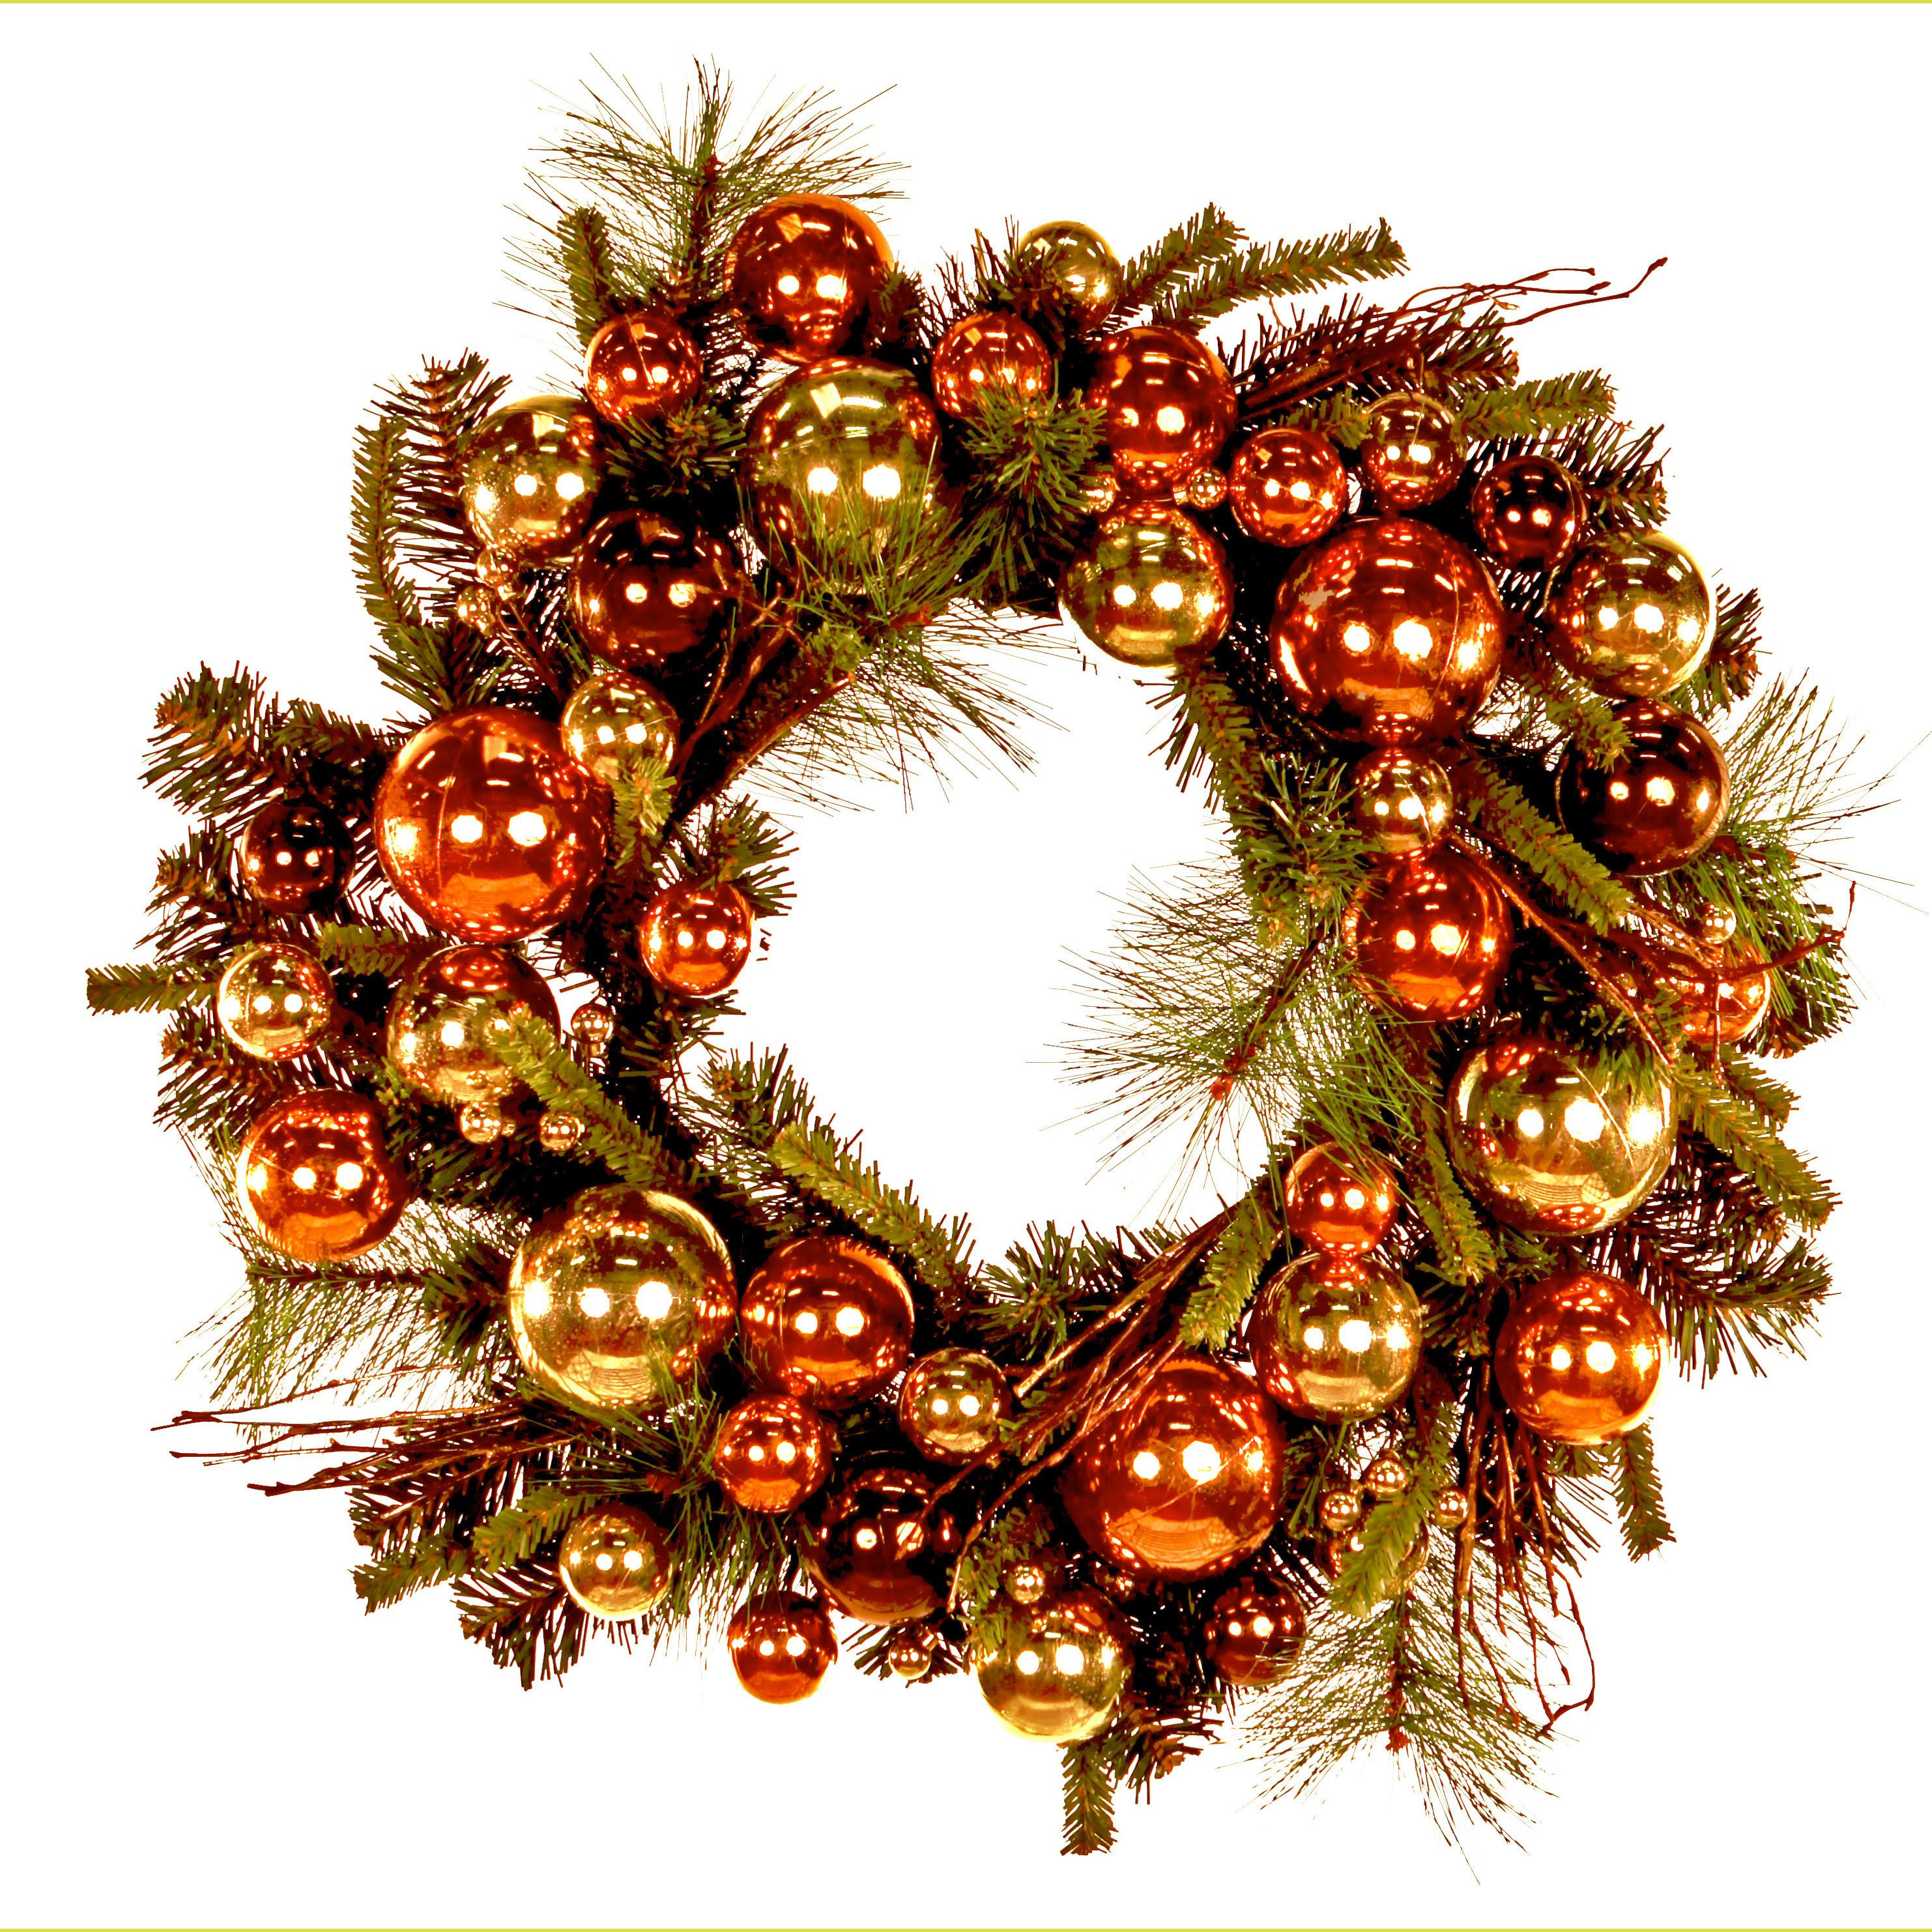 Decorations Sparkling Christmas Wreath Shiny Xmas